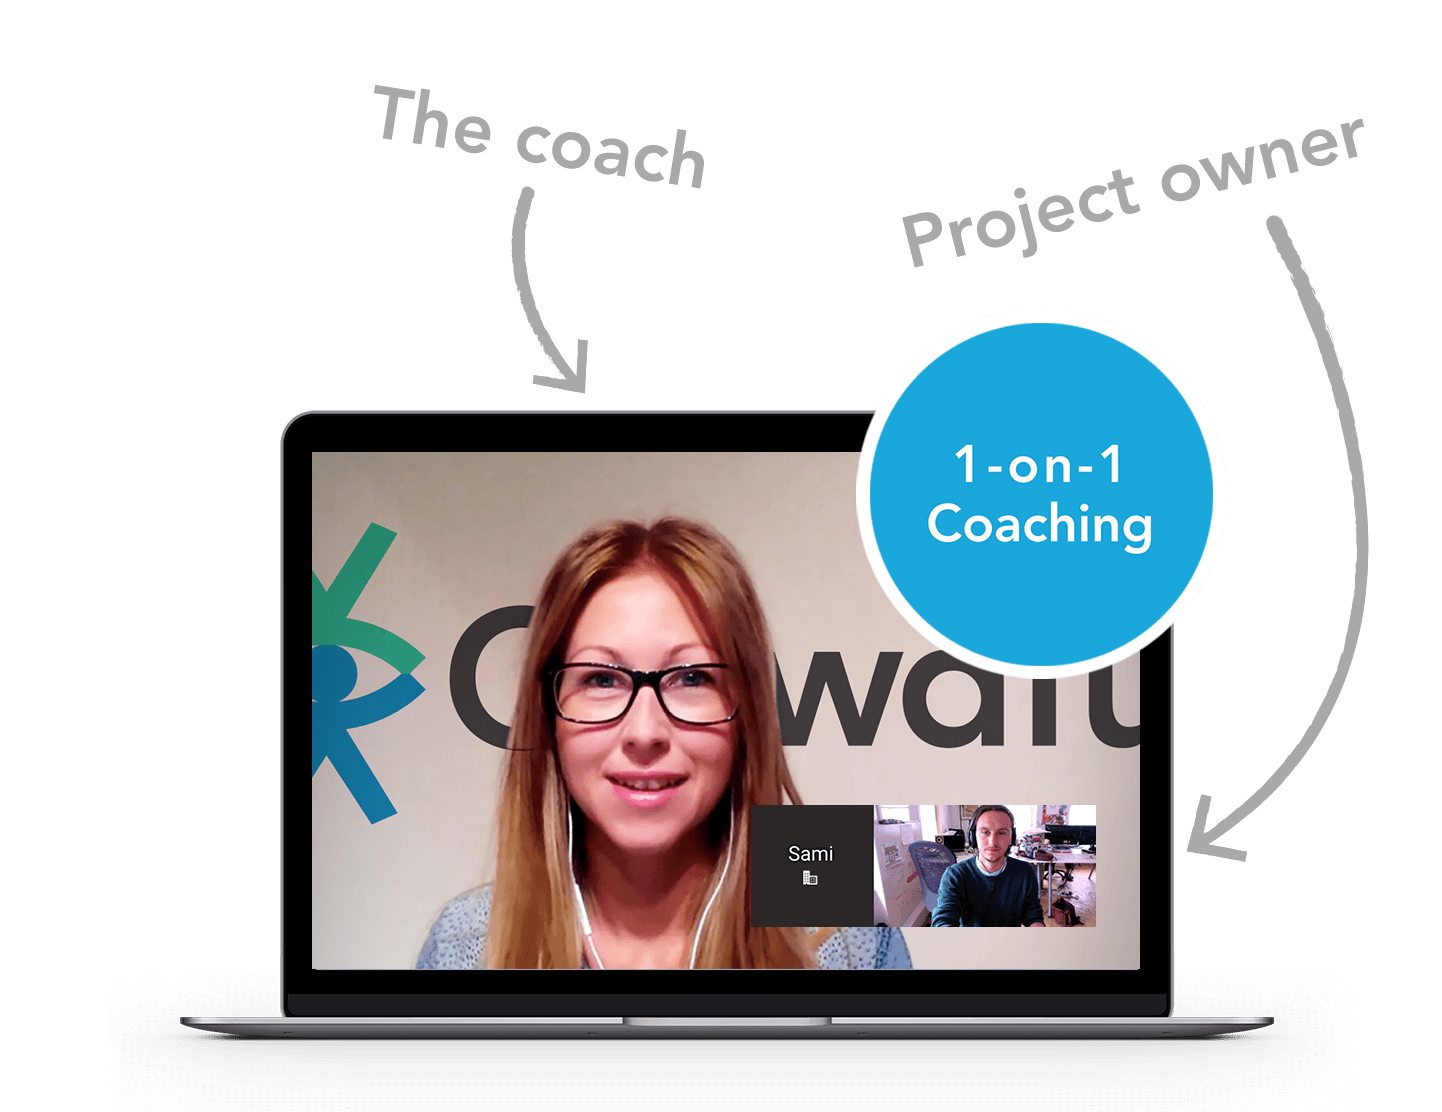 Coaching expertise to connect to the right projects